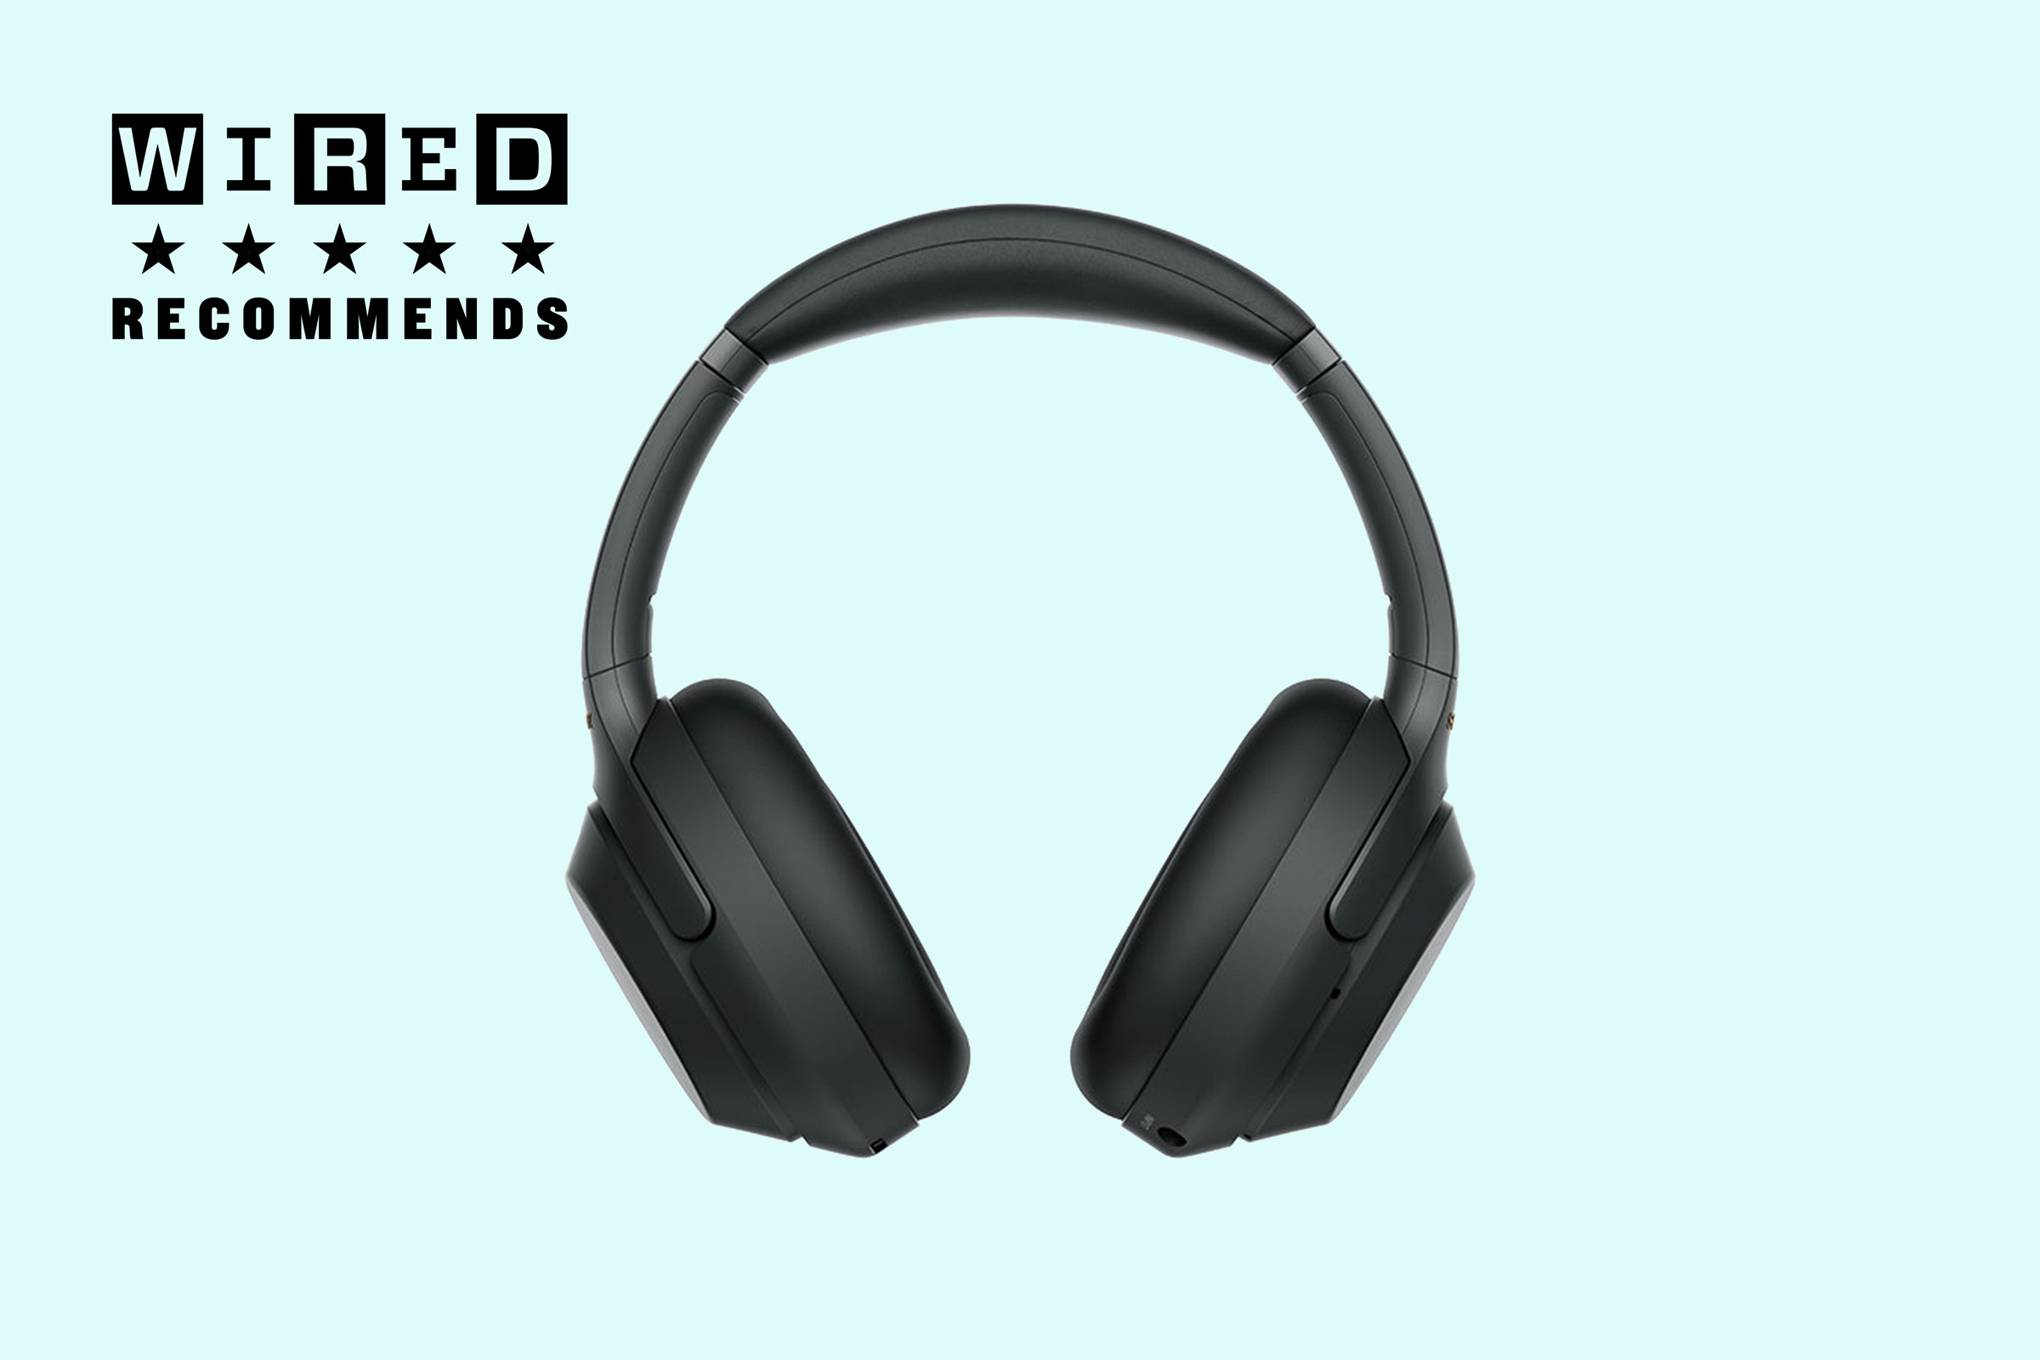 096b4f866c9 The best headphones for any budget in 2019 | WIRED UK